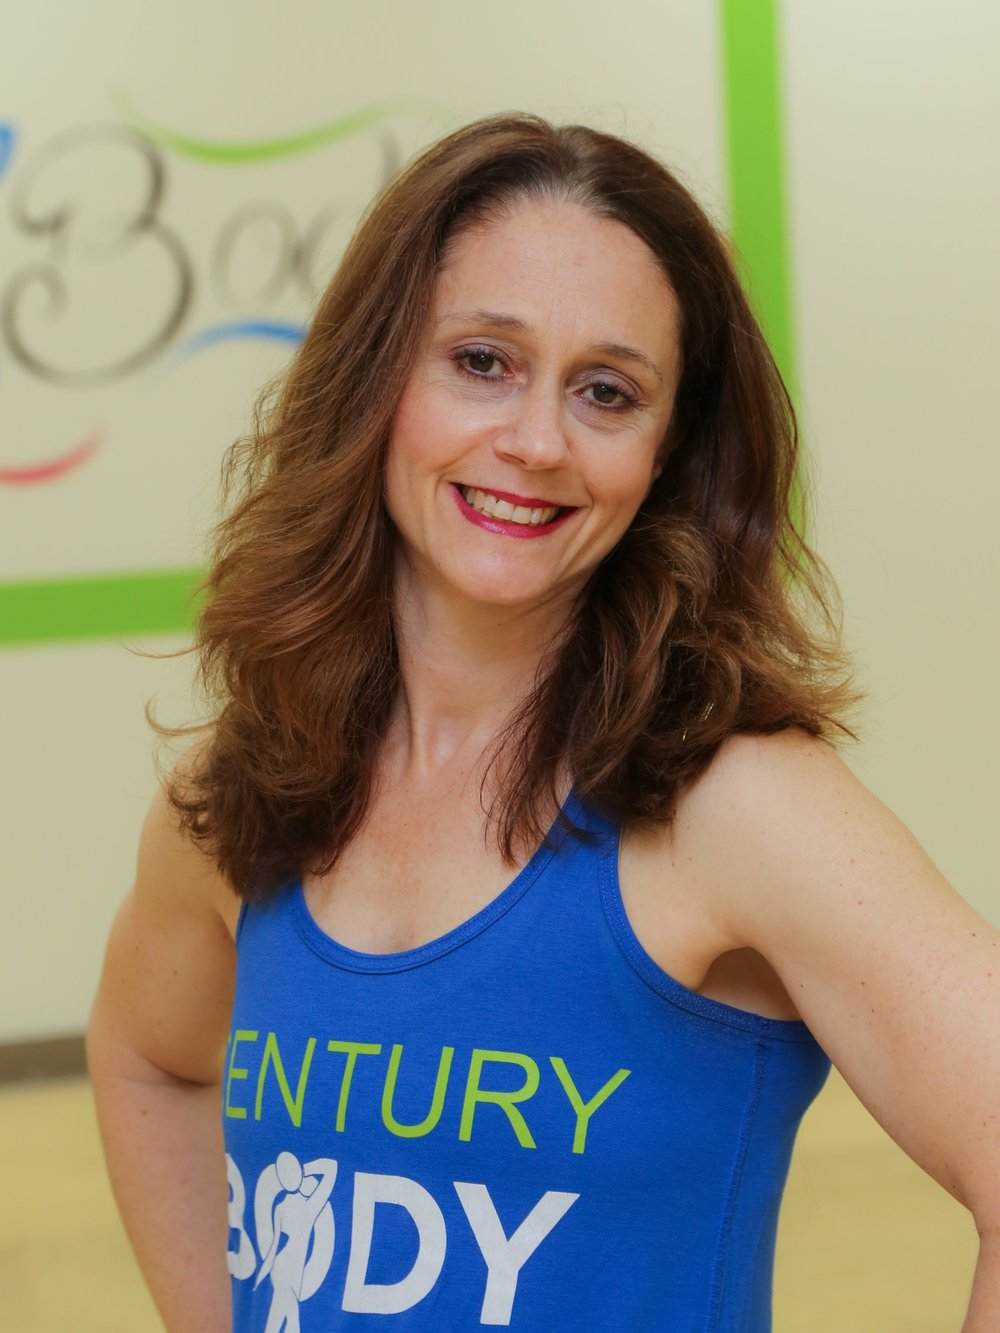 Jennifer Rubenkoenig   I'm the owner and lead Zumba® Fitness instructor at Century Body. I've been passionate about helping those interested in living a healthy lifestyle, spending — years as a health and wellness coach and 10 years as a Zumba® Fitness instructor. At Century Body, the goal is to live in our bodies until we are 100! Zumba® Fitness is my preferred form of cardio because it makes me feel free and happy — no matter how bad a day I might have. As soon as the music starts, I forget all my worries! As an instructor, I love seeing how students move differently to songs, how they make it their own, how they smile and laugh and sweat all at once. I can't wait to meet you!